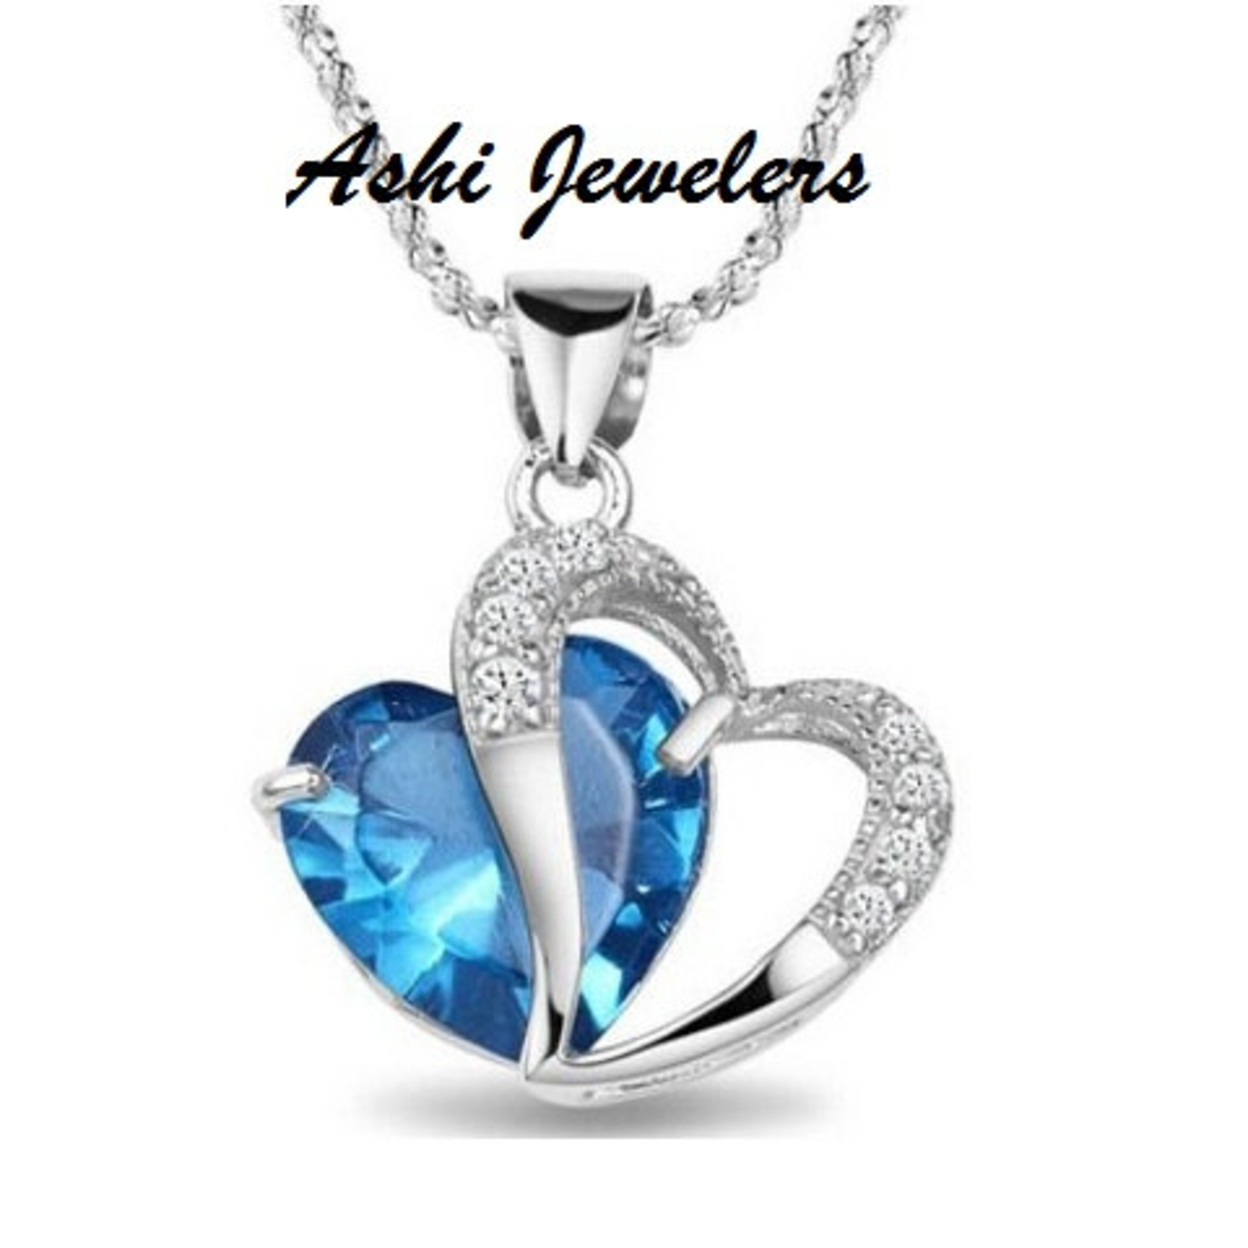 Choose 1 Beautiful Heart Shaped Platinum plated CZ Pendant Necklace 5555675d7aaaaa4f0e8b74bb